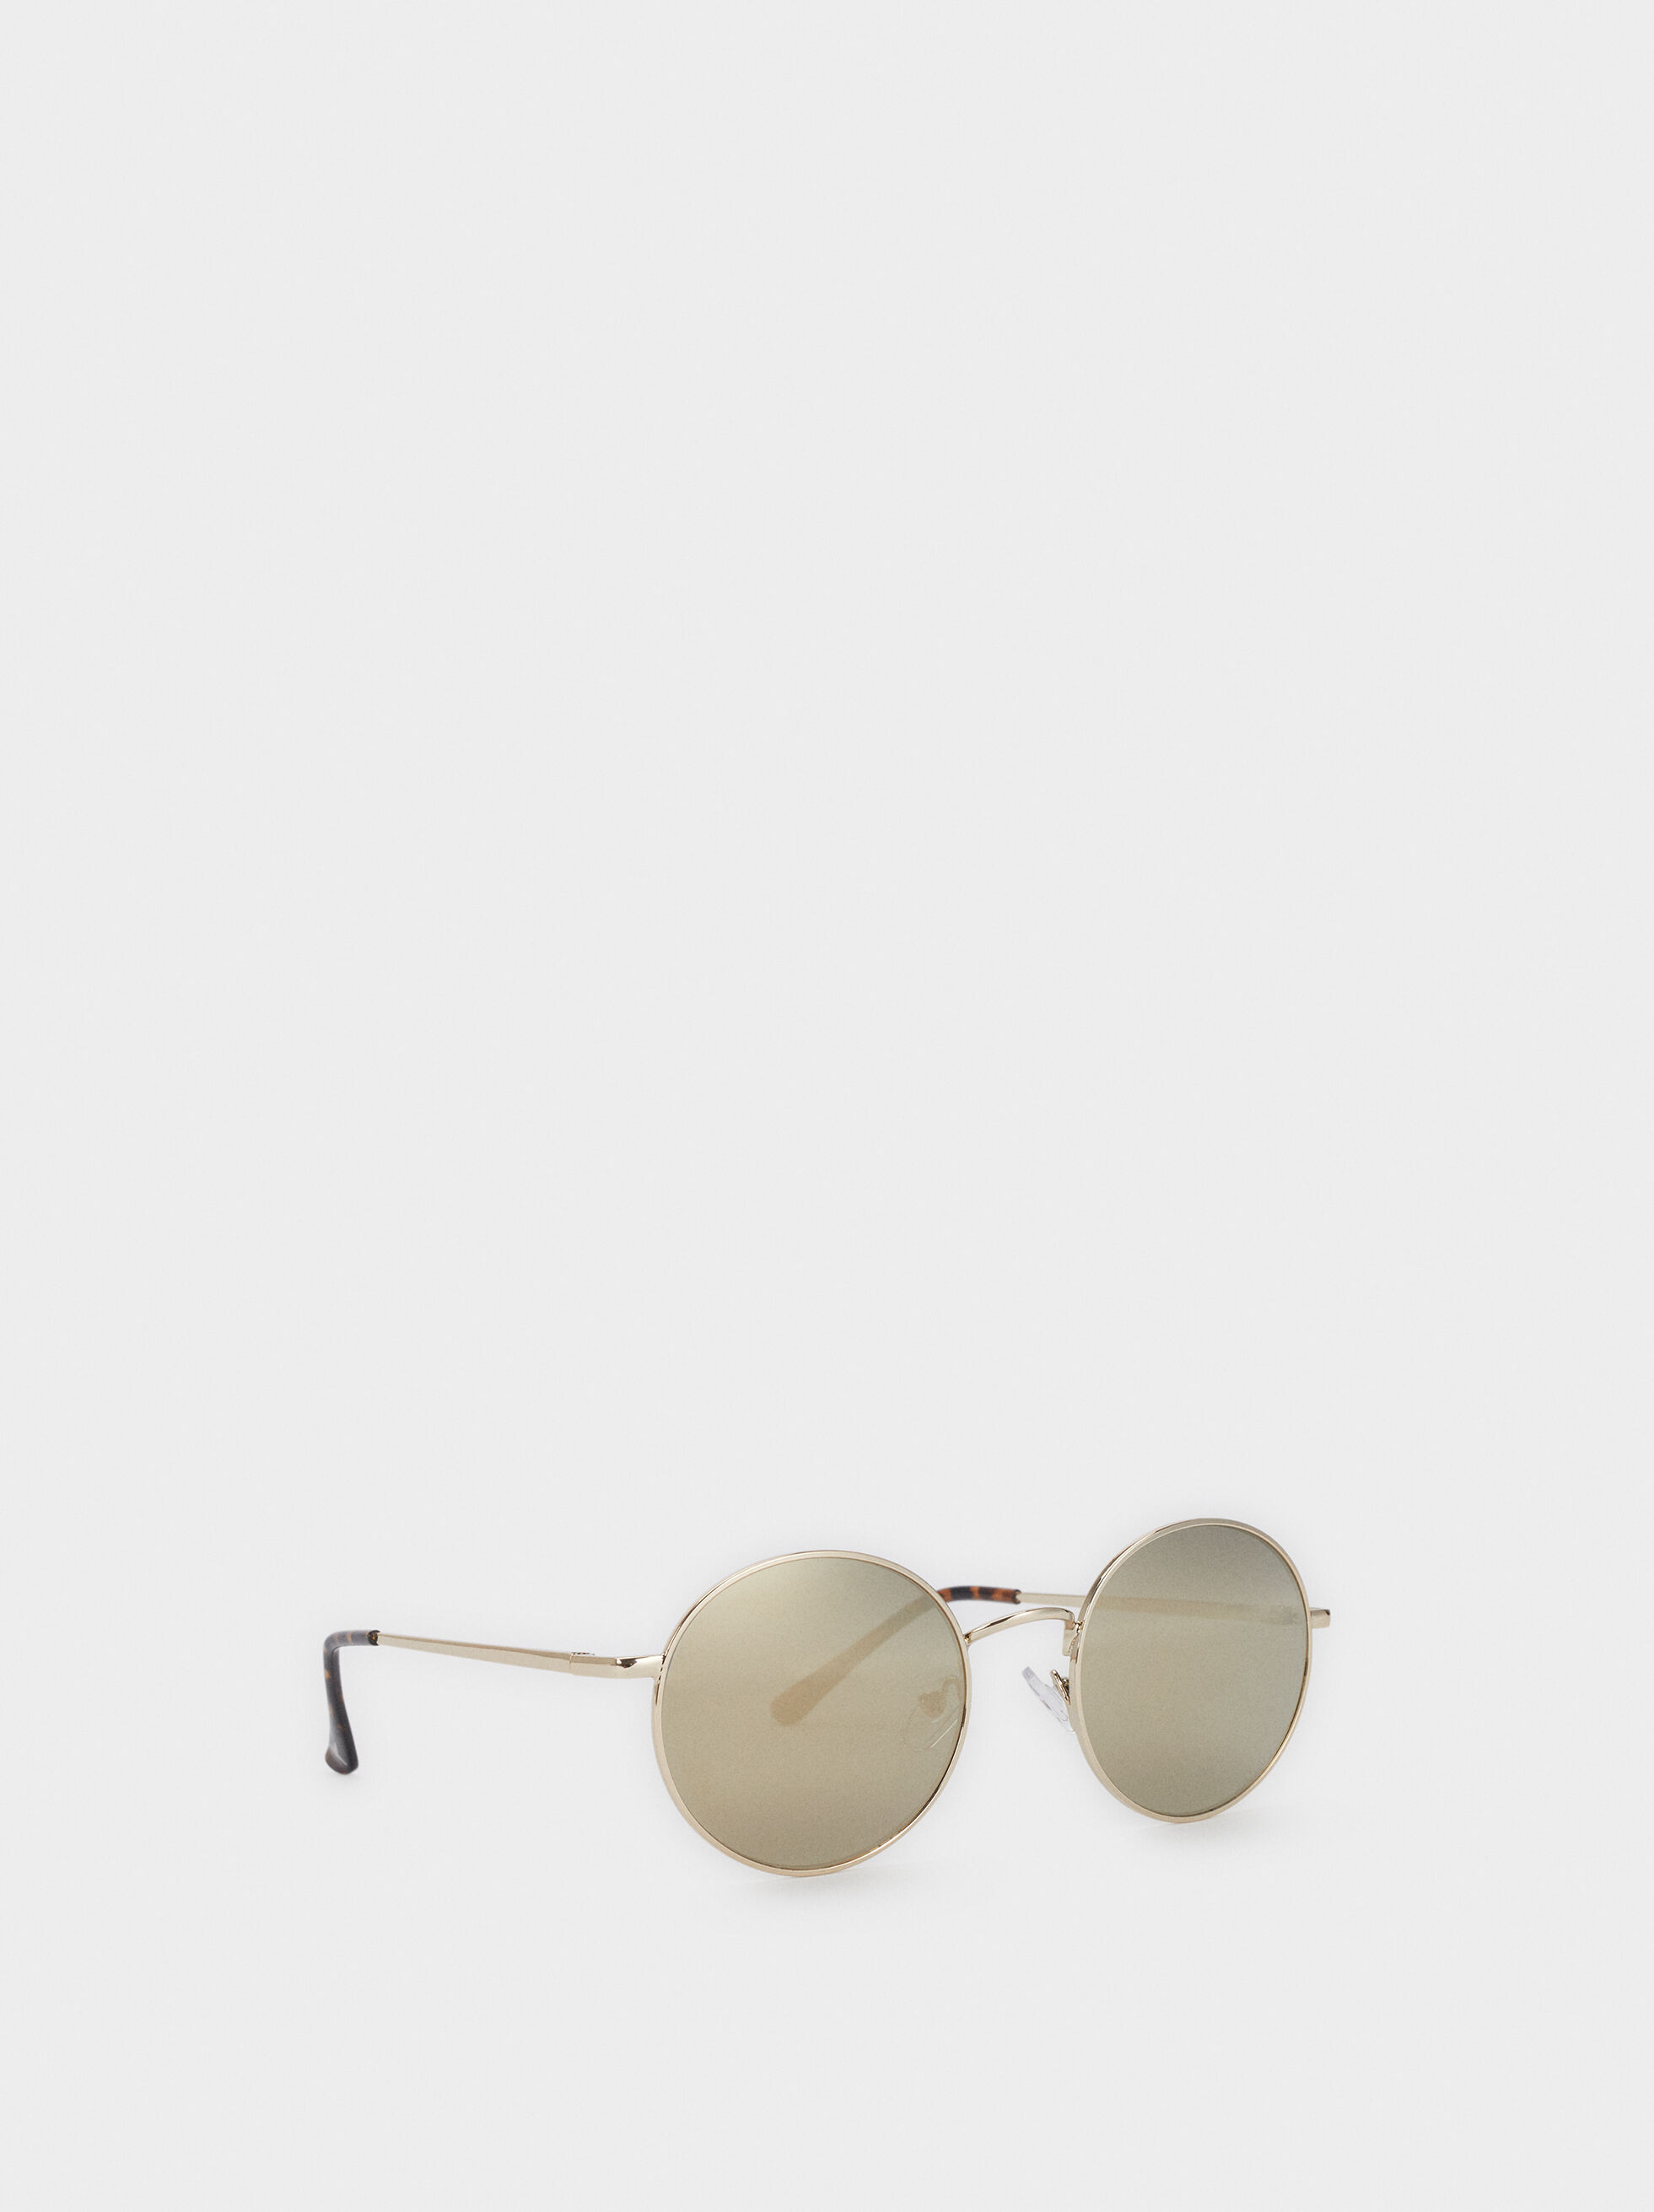 Round Metallic Sunglasses, Silver, hi-res